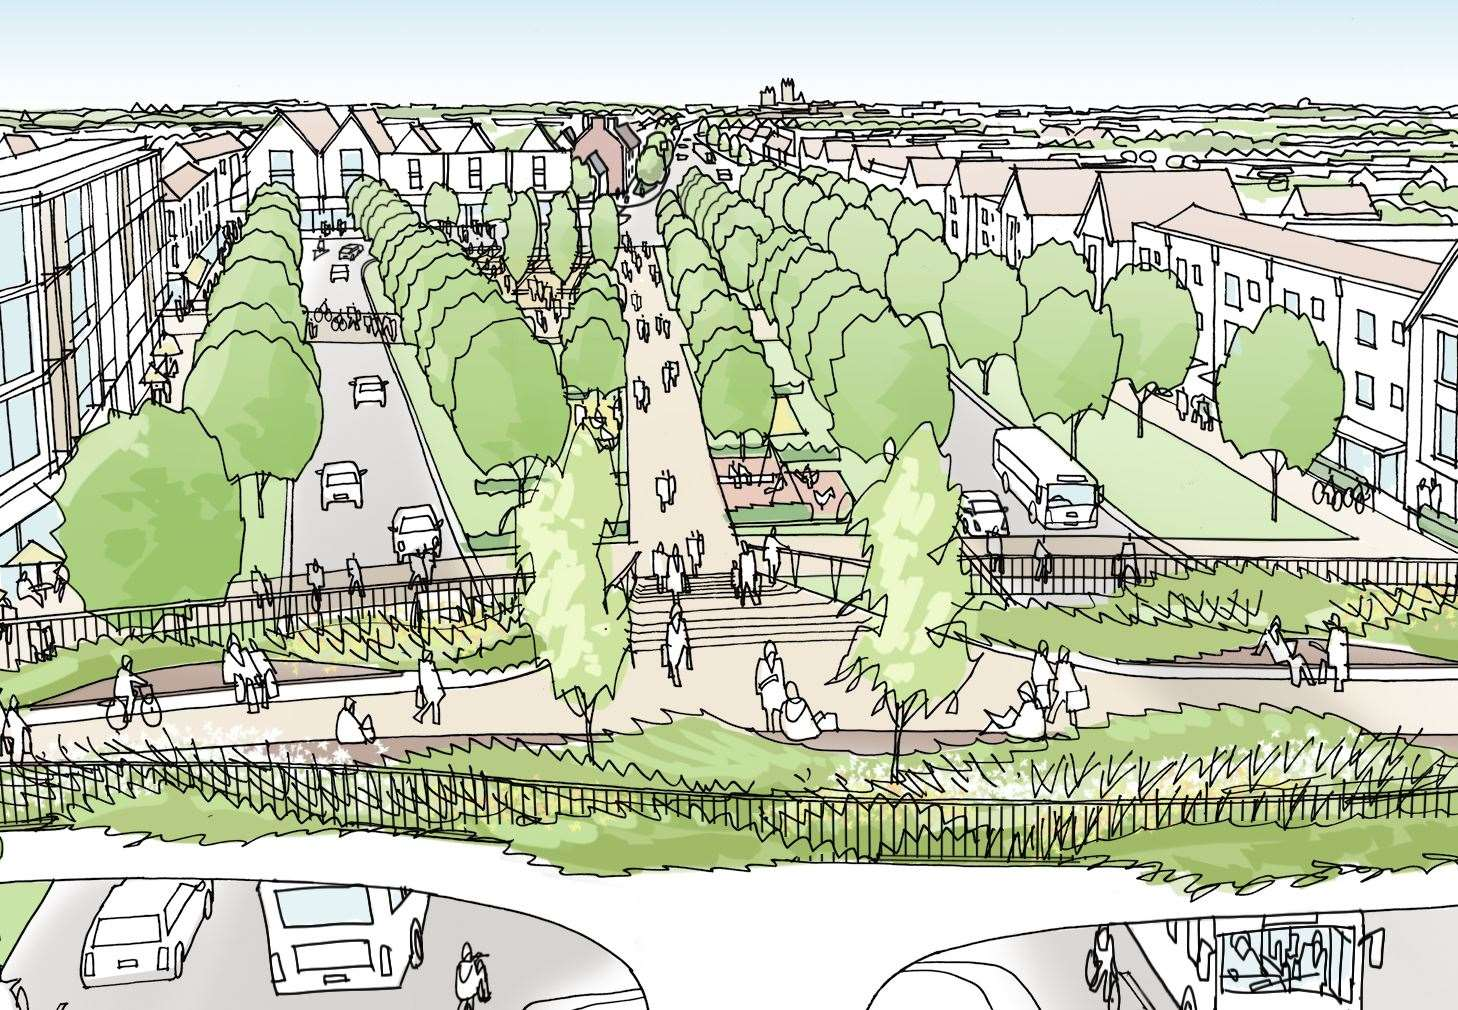 An artist's impression of the proposed 4,000-home Mountfield Park scheme